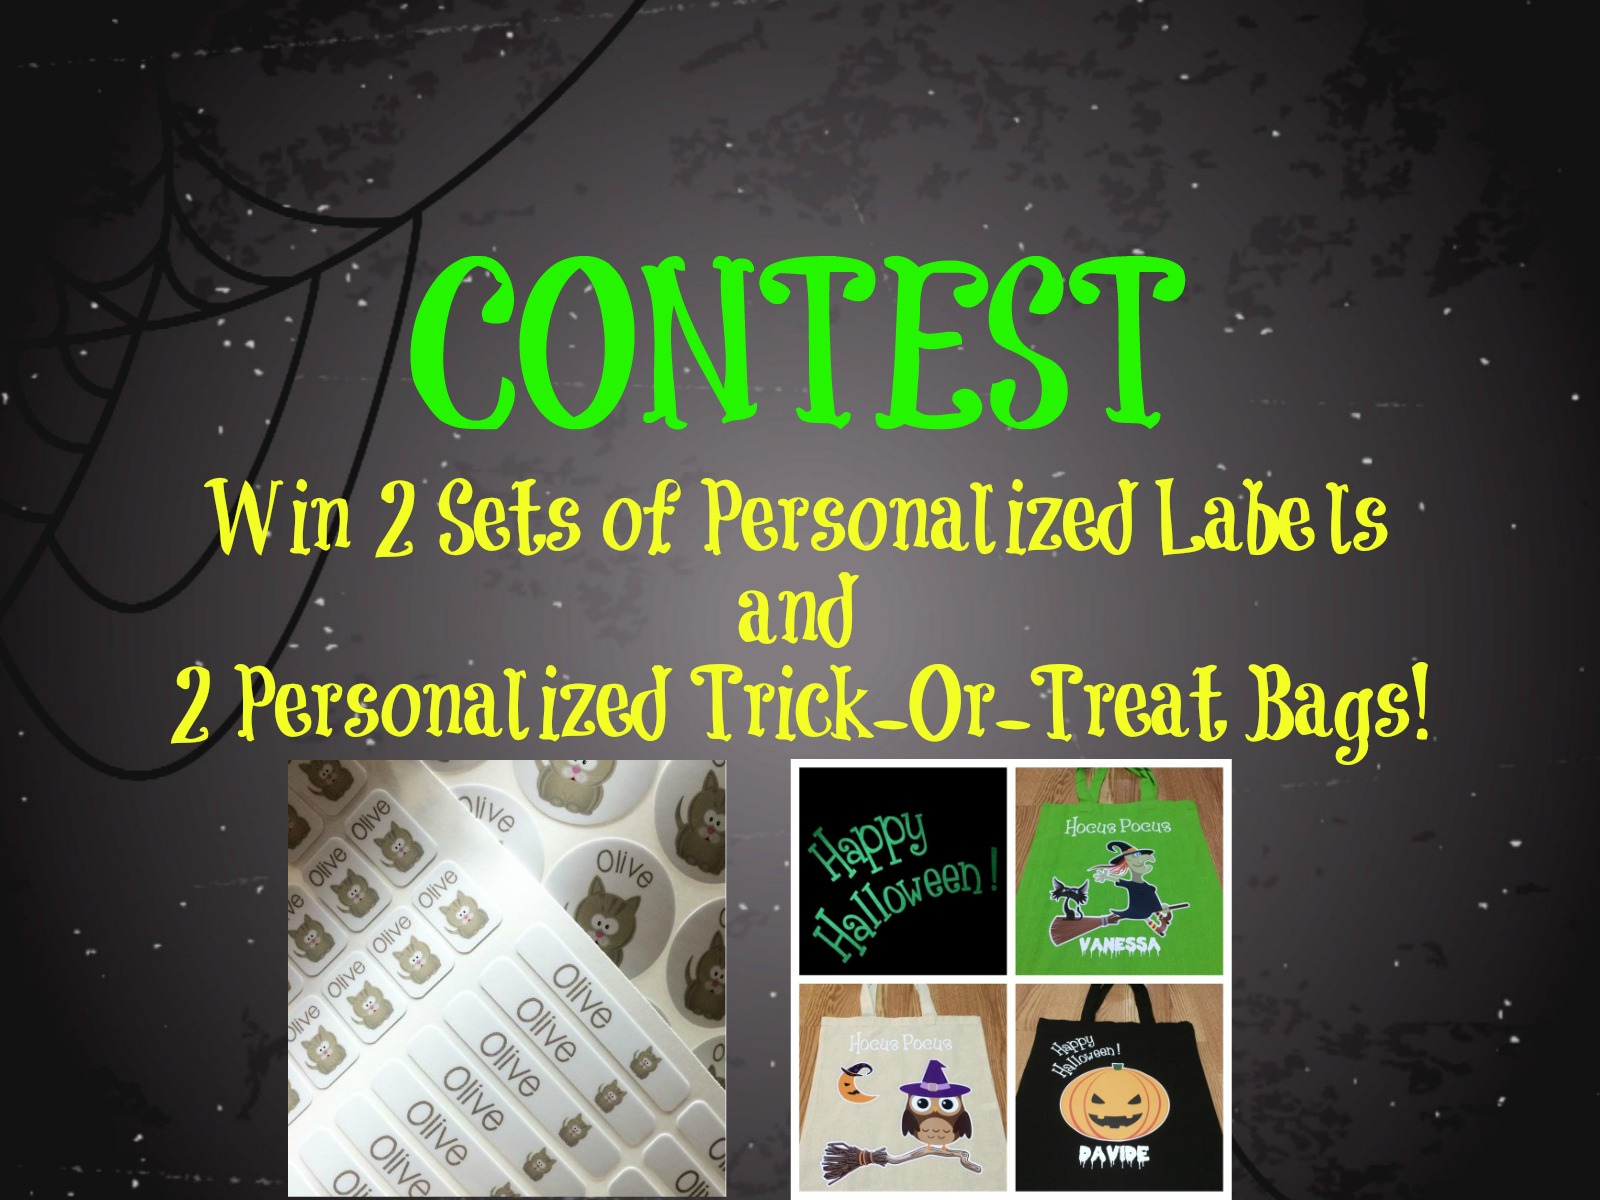 CONTEST: Personalized Halloween Bags & Labels!